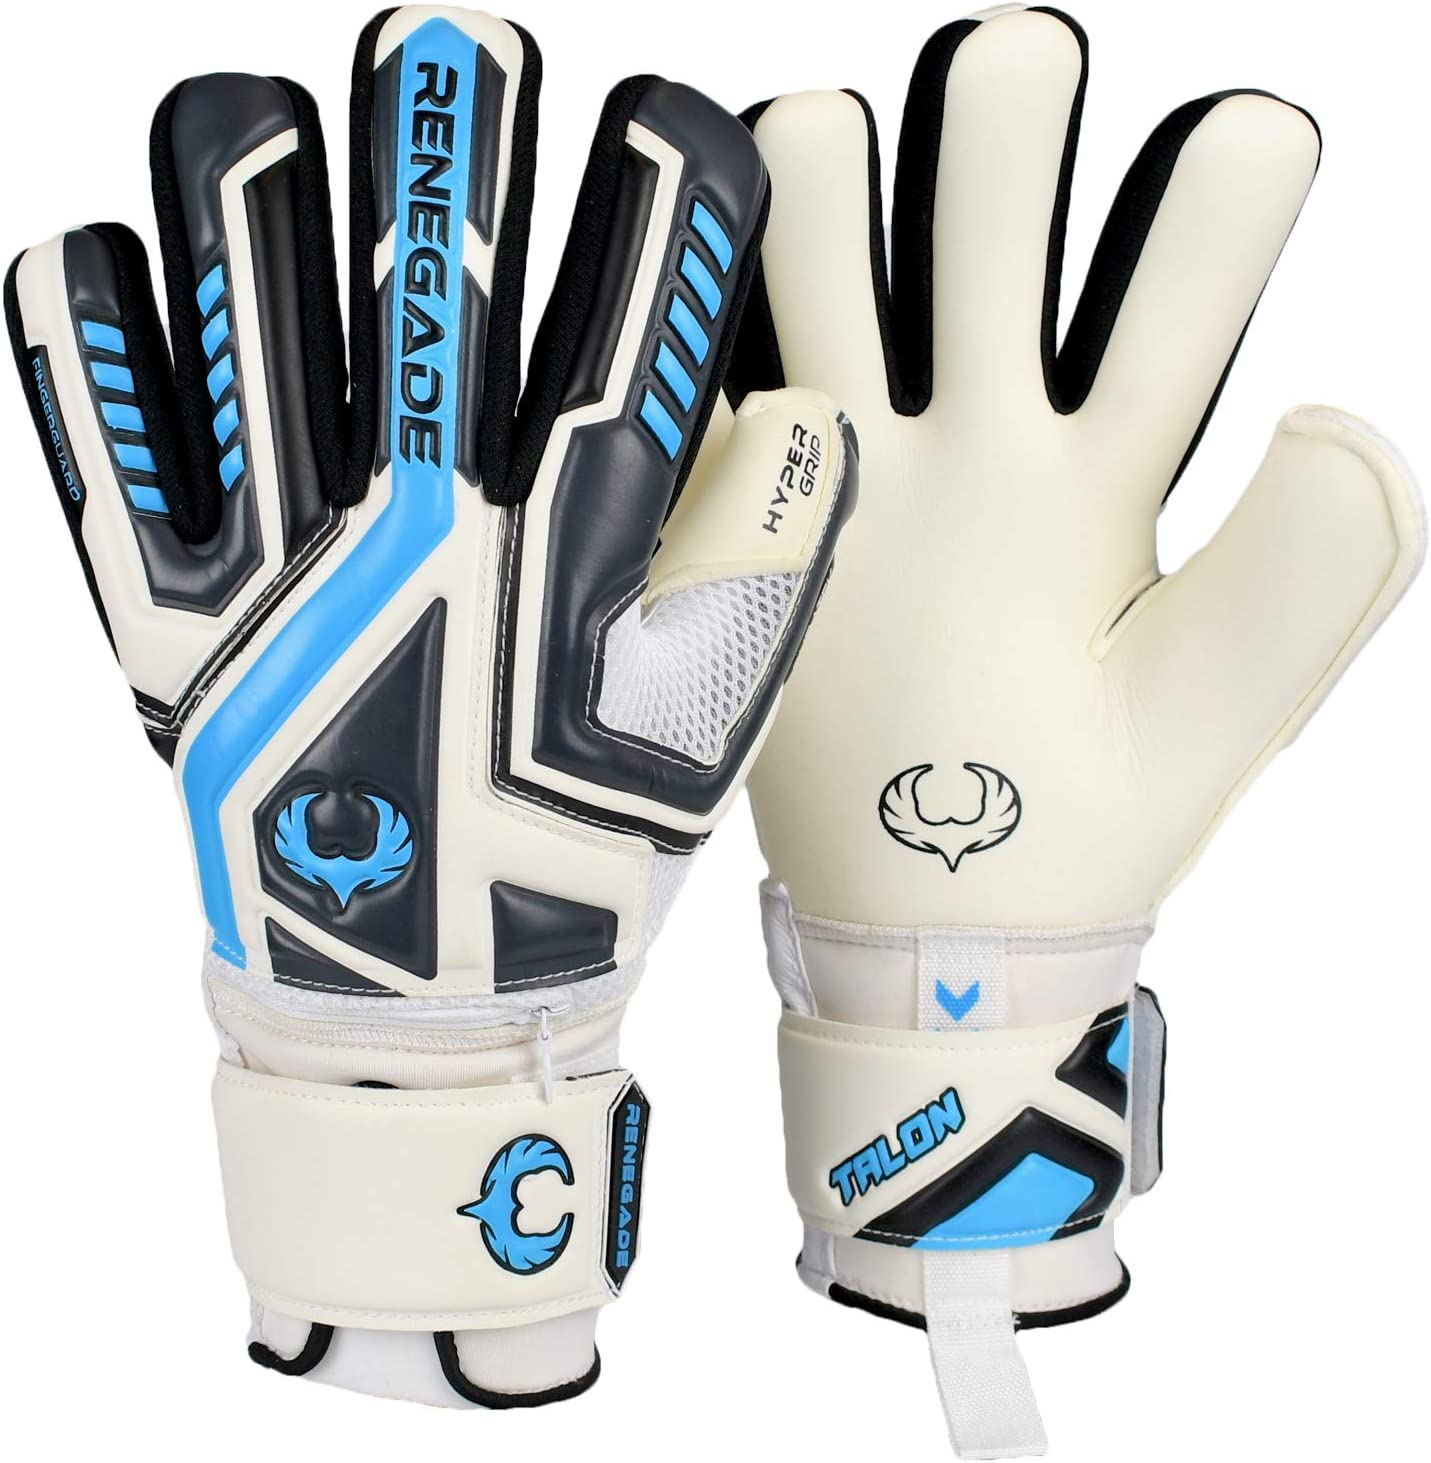 Based in The USA Pro-Tek Fingersaves /& 3.5+3mm Hyper Grip Sizes 5-11, 3 Styles, Level 2 Versatile Glove for All Ages /& Levels Renegade GK Talon Goalie Gloves with Microbe-Guard